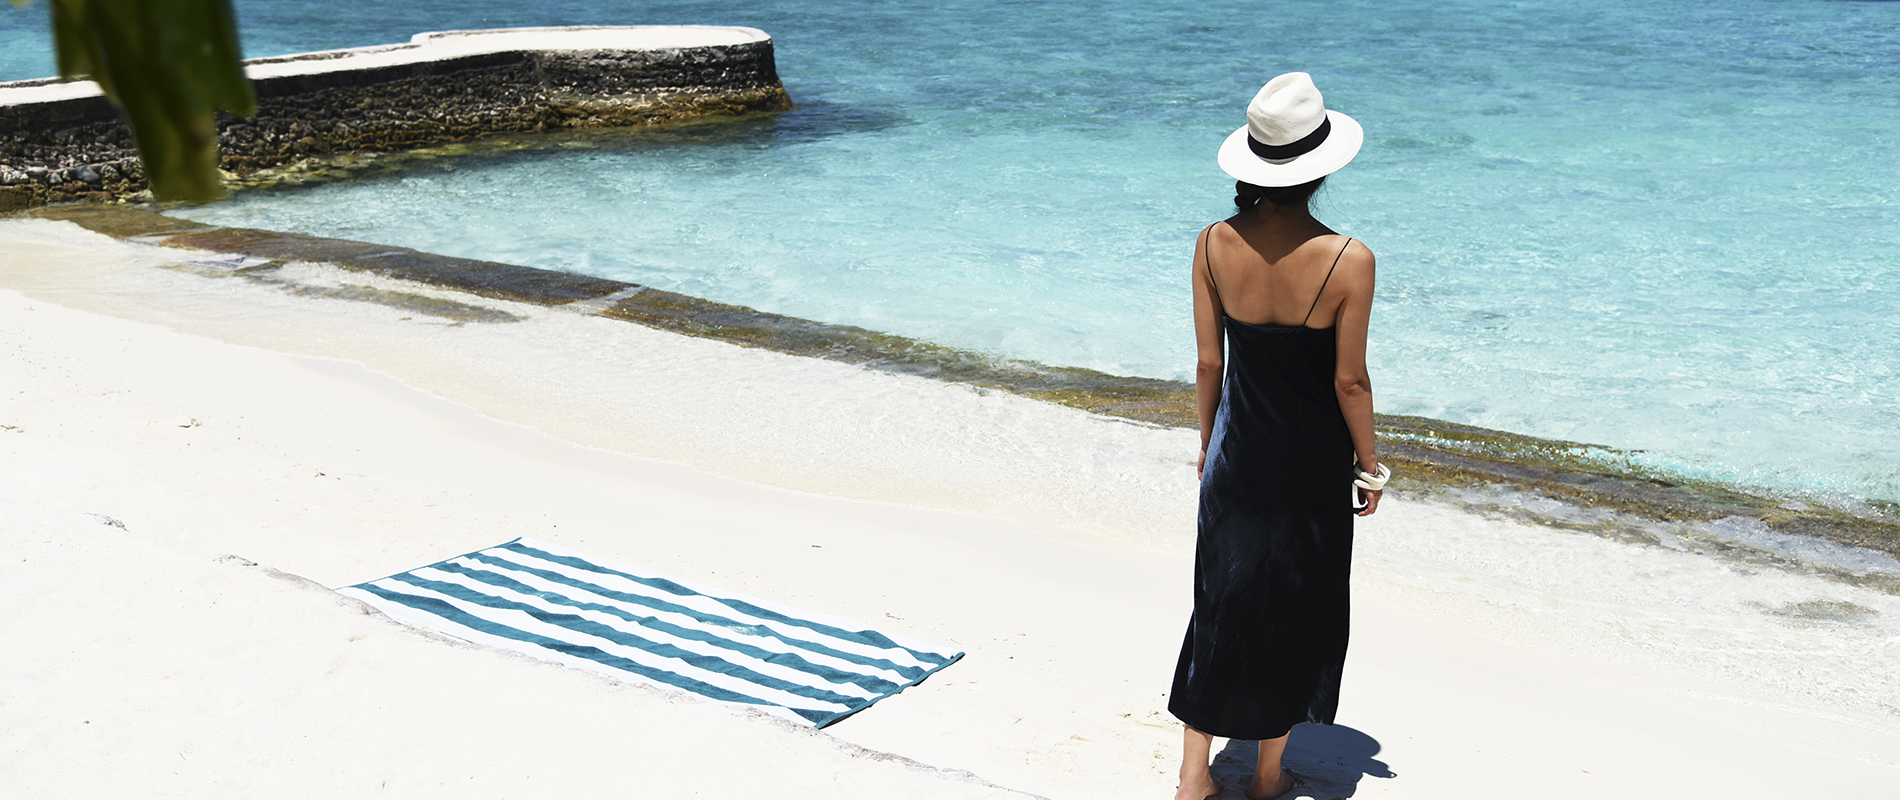 JCrew-Maldives-Banner-1